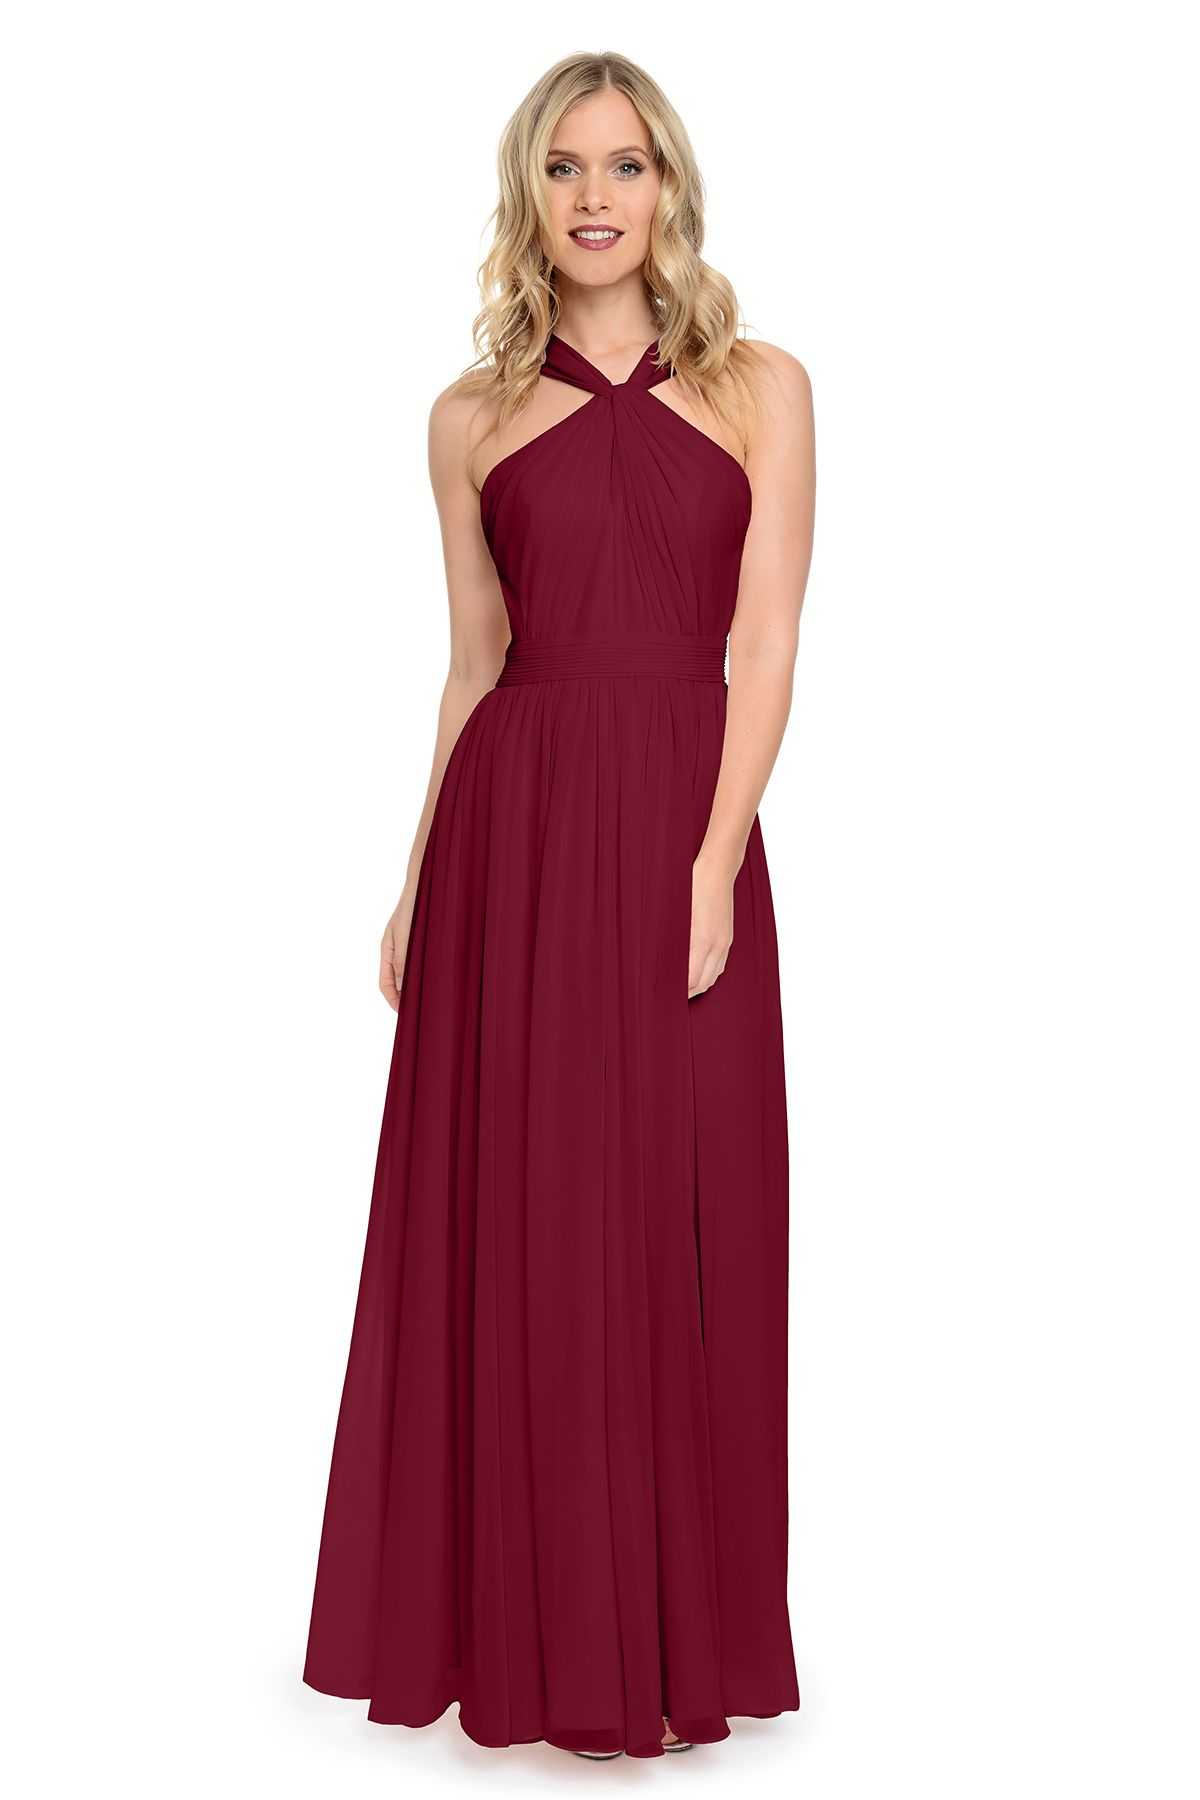 47c5524e2d7 Shop Dove   Dahlia Bridesmaid Dress - Cora in Poly Chiffon at Weddington  Way. Find the perfect made-to-order bridesmaid dresses for your bridal ...